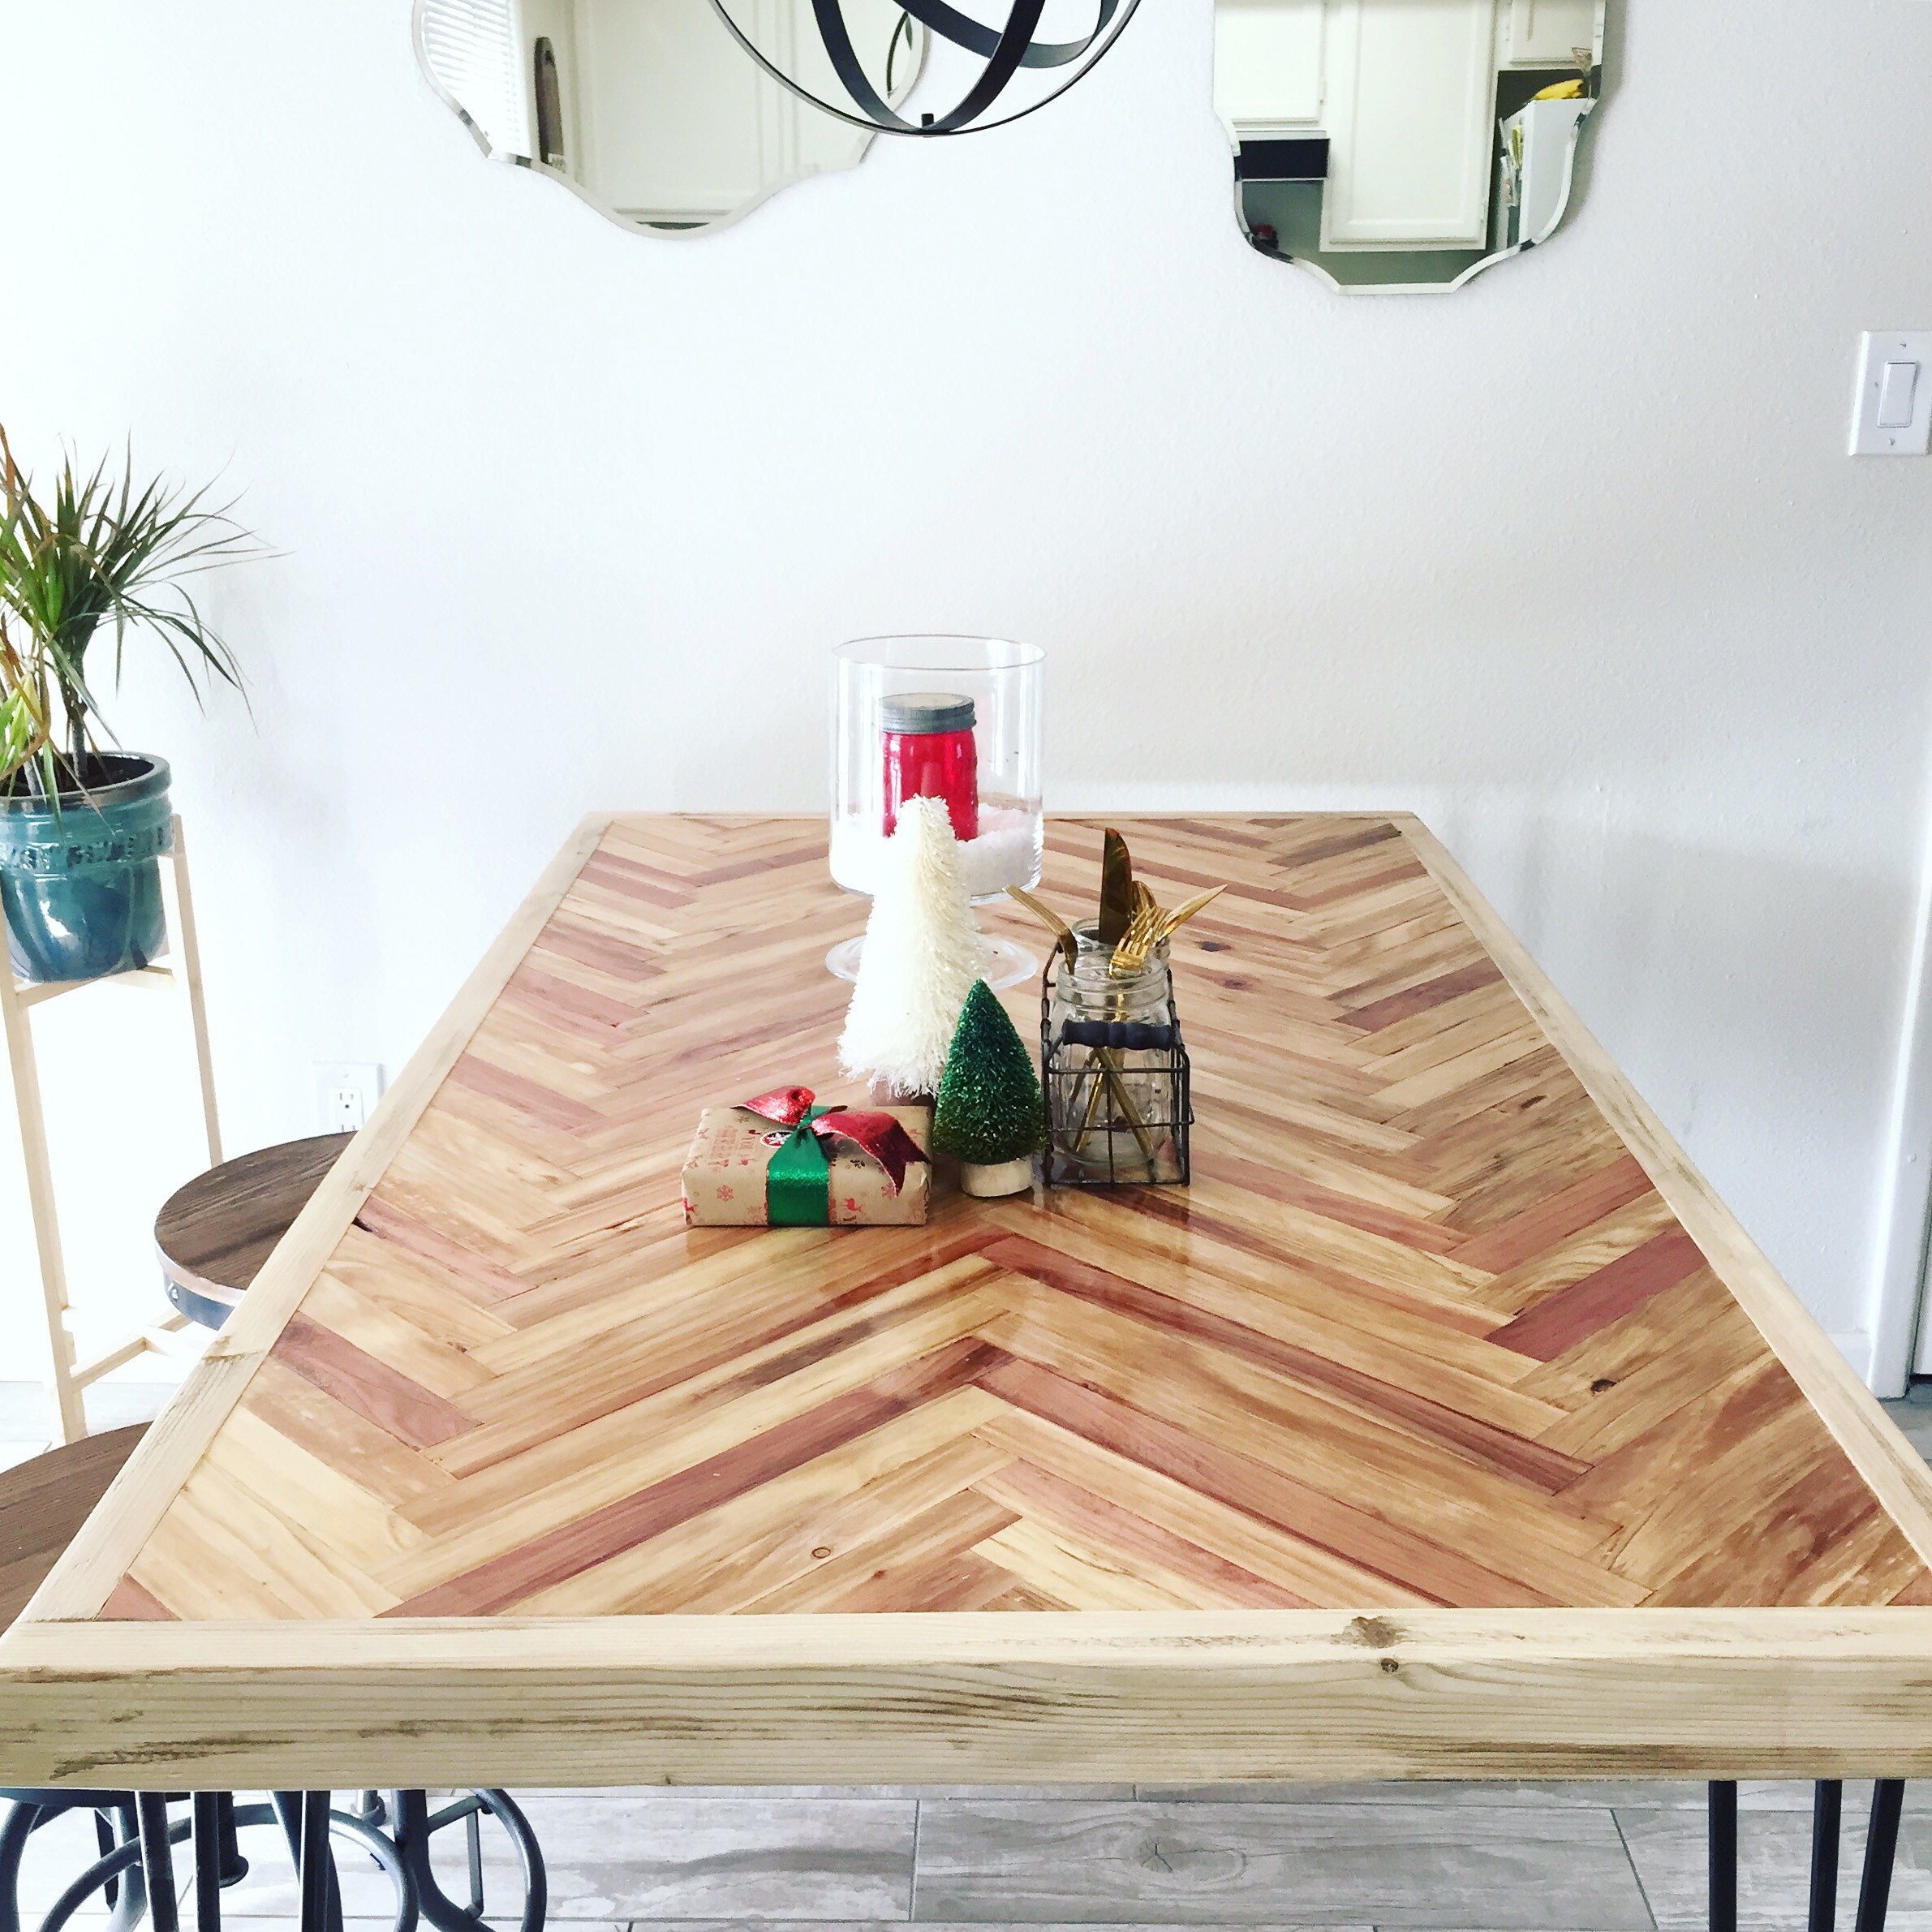 New Vibrant Herringbone Lath Wood Dining Table W/ Black Hairpin Legs Mid  Century Modern Rustic Free Shipping!